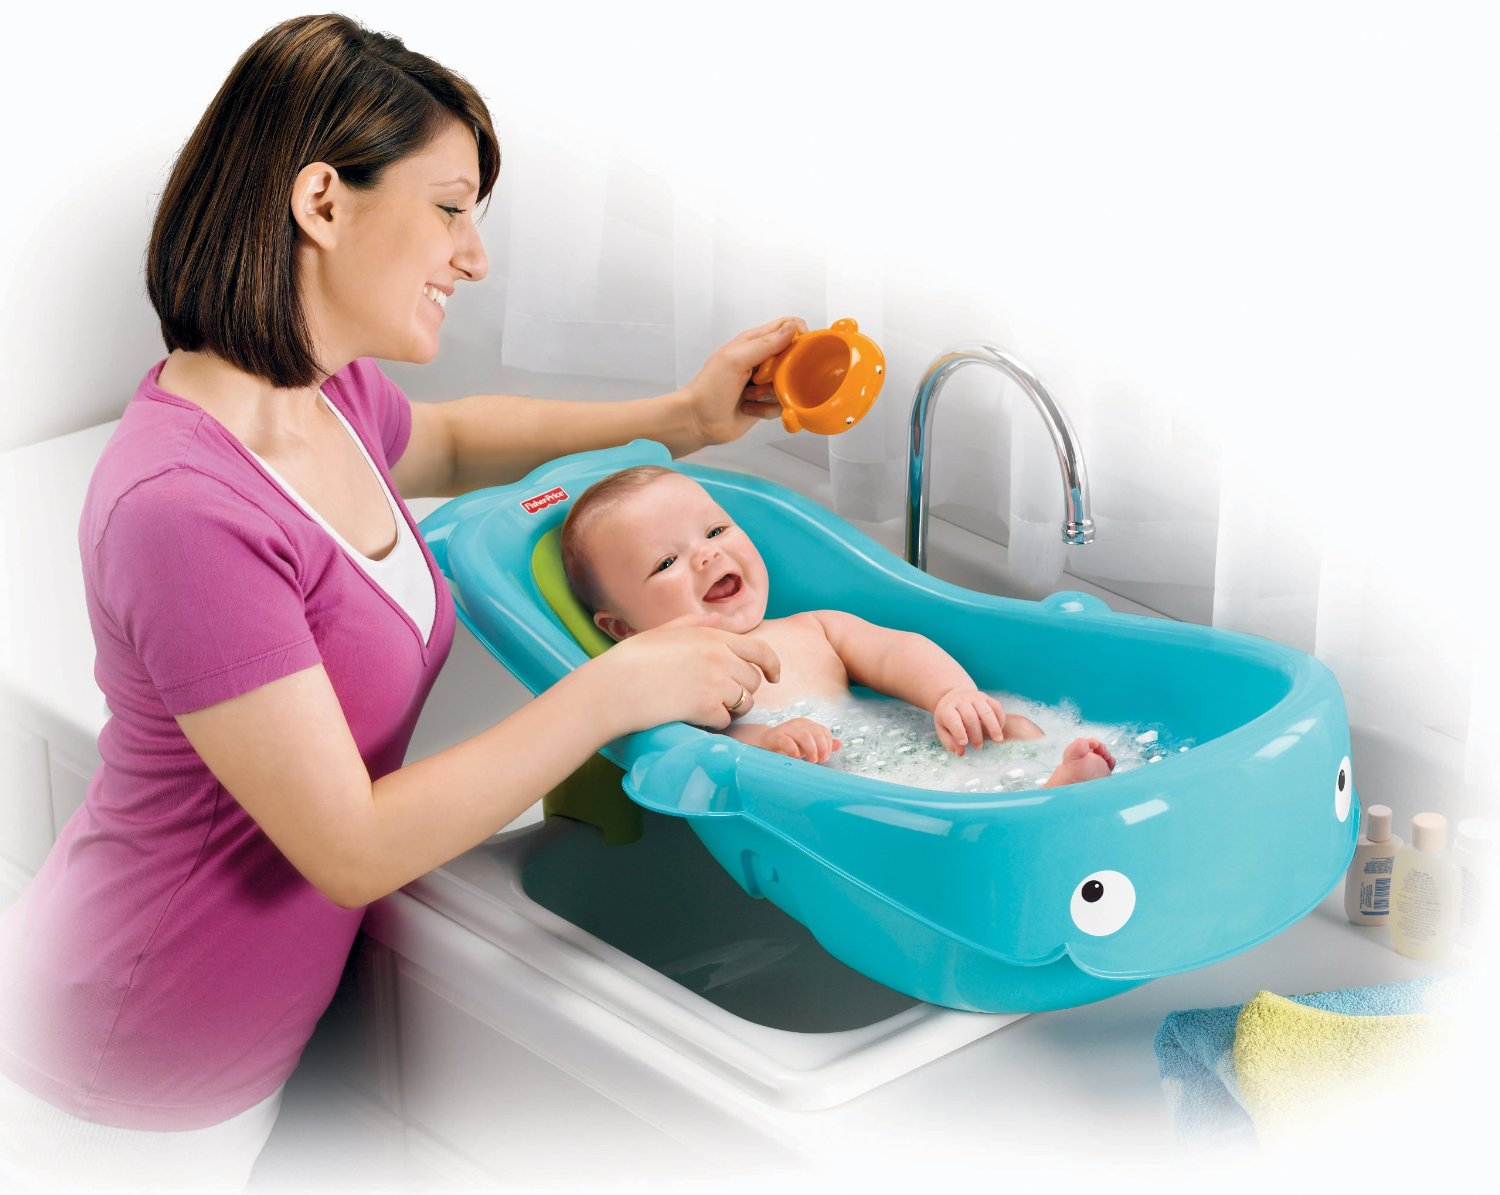 Infant Bath Time Products Which Is The Best Bathtub For Your Baby Read Our Reviews